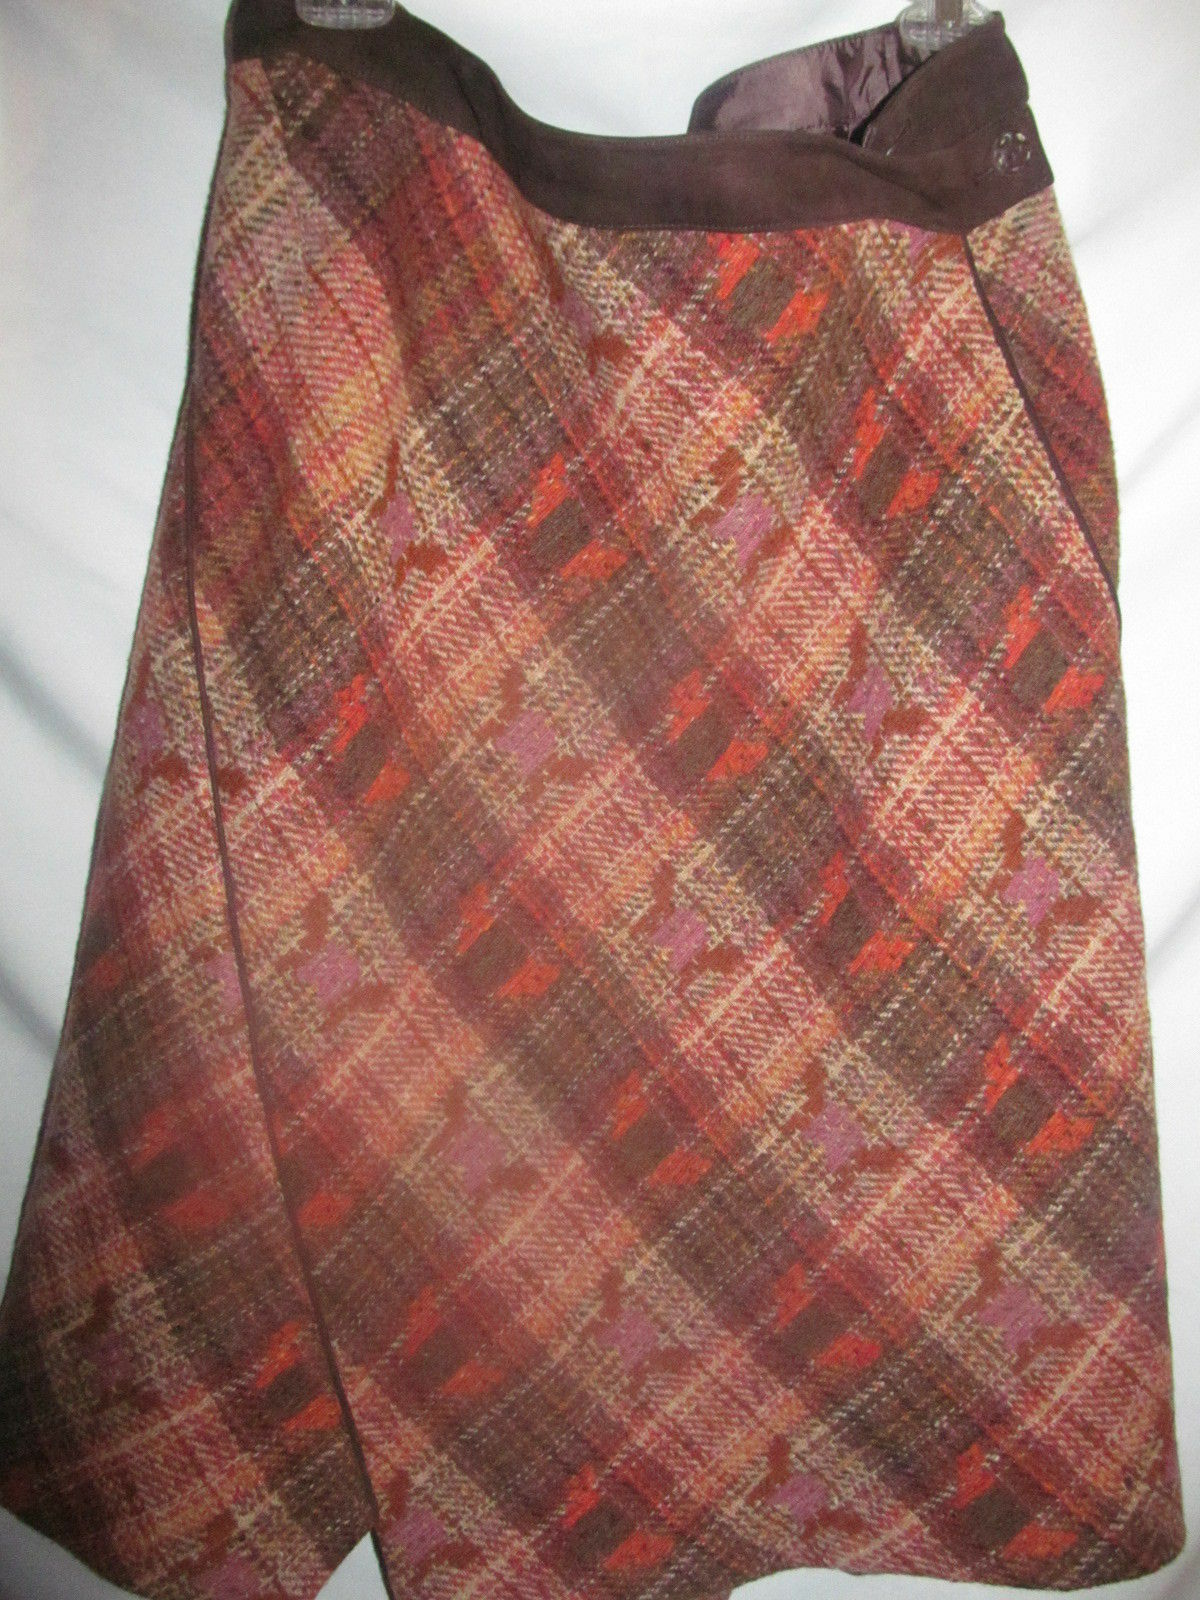 Faconnable Wool and Leather Suede Skirt  SZ 14 MSRP